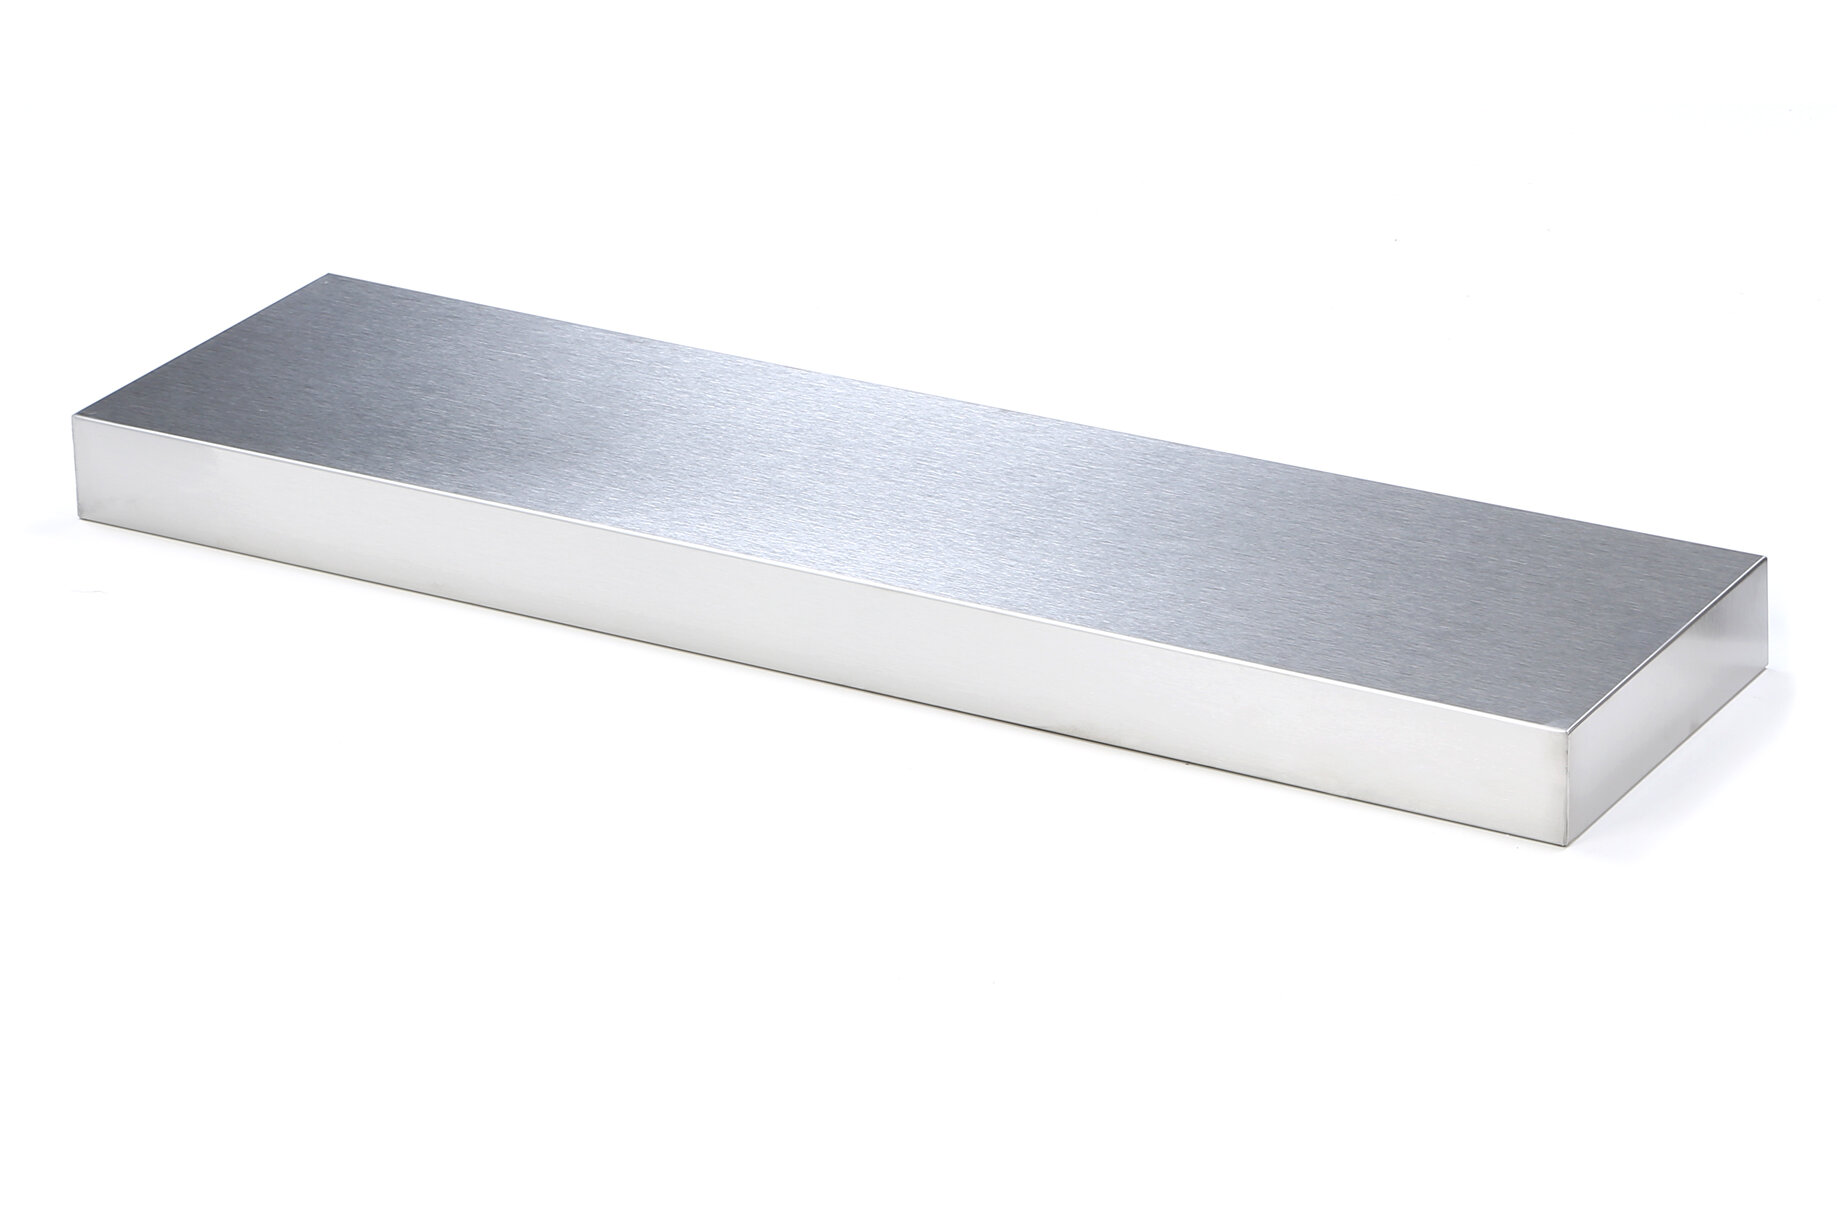 Details about Danver Stainless Steel Floating Shelf